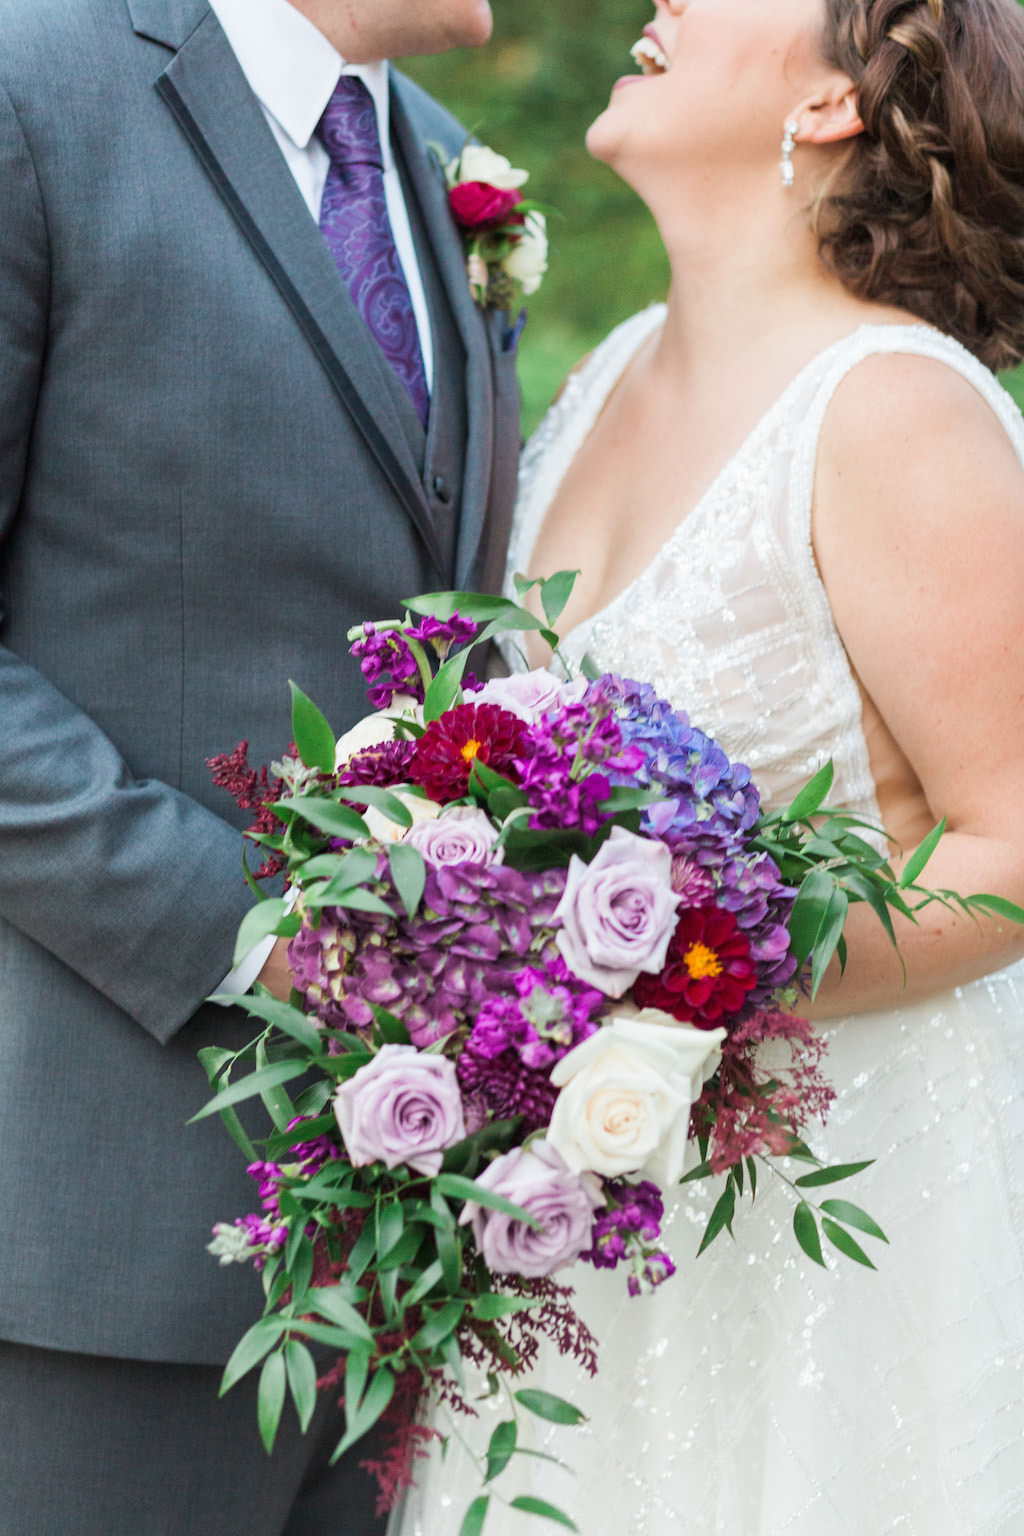 Outdoor Garden Bride and Groom Wedding Portrait with Magenta, Lavender, Violet, and Purple Bouquet with Greenery, Groom in Gray Suit with Paisley Purple Tie and White and Pink Boutonniere